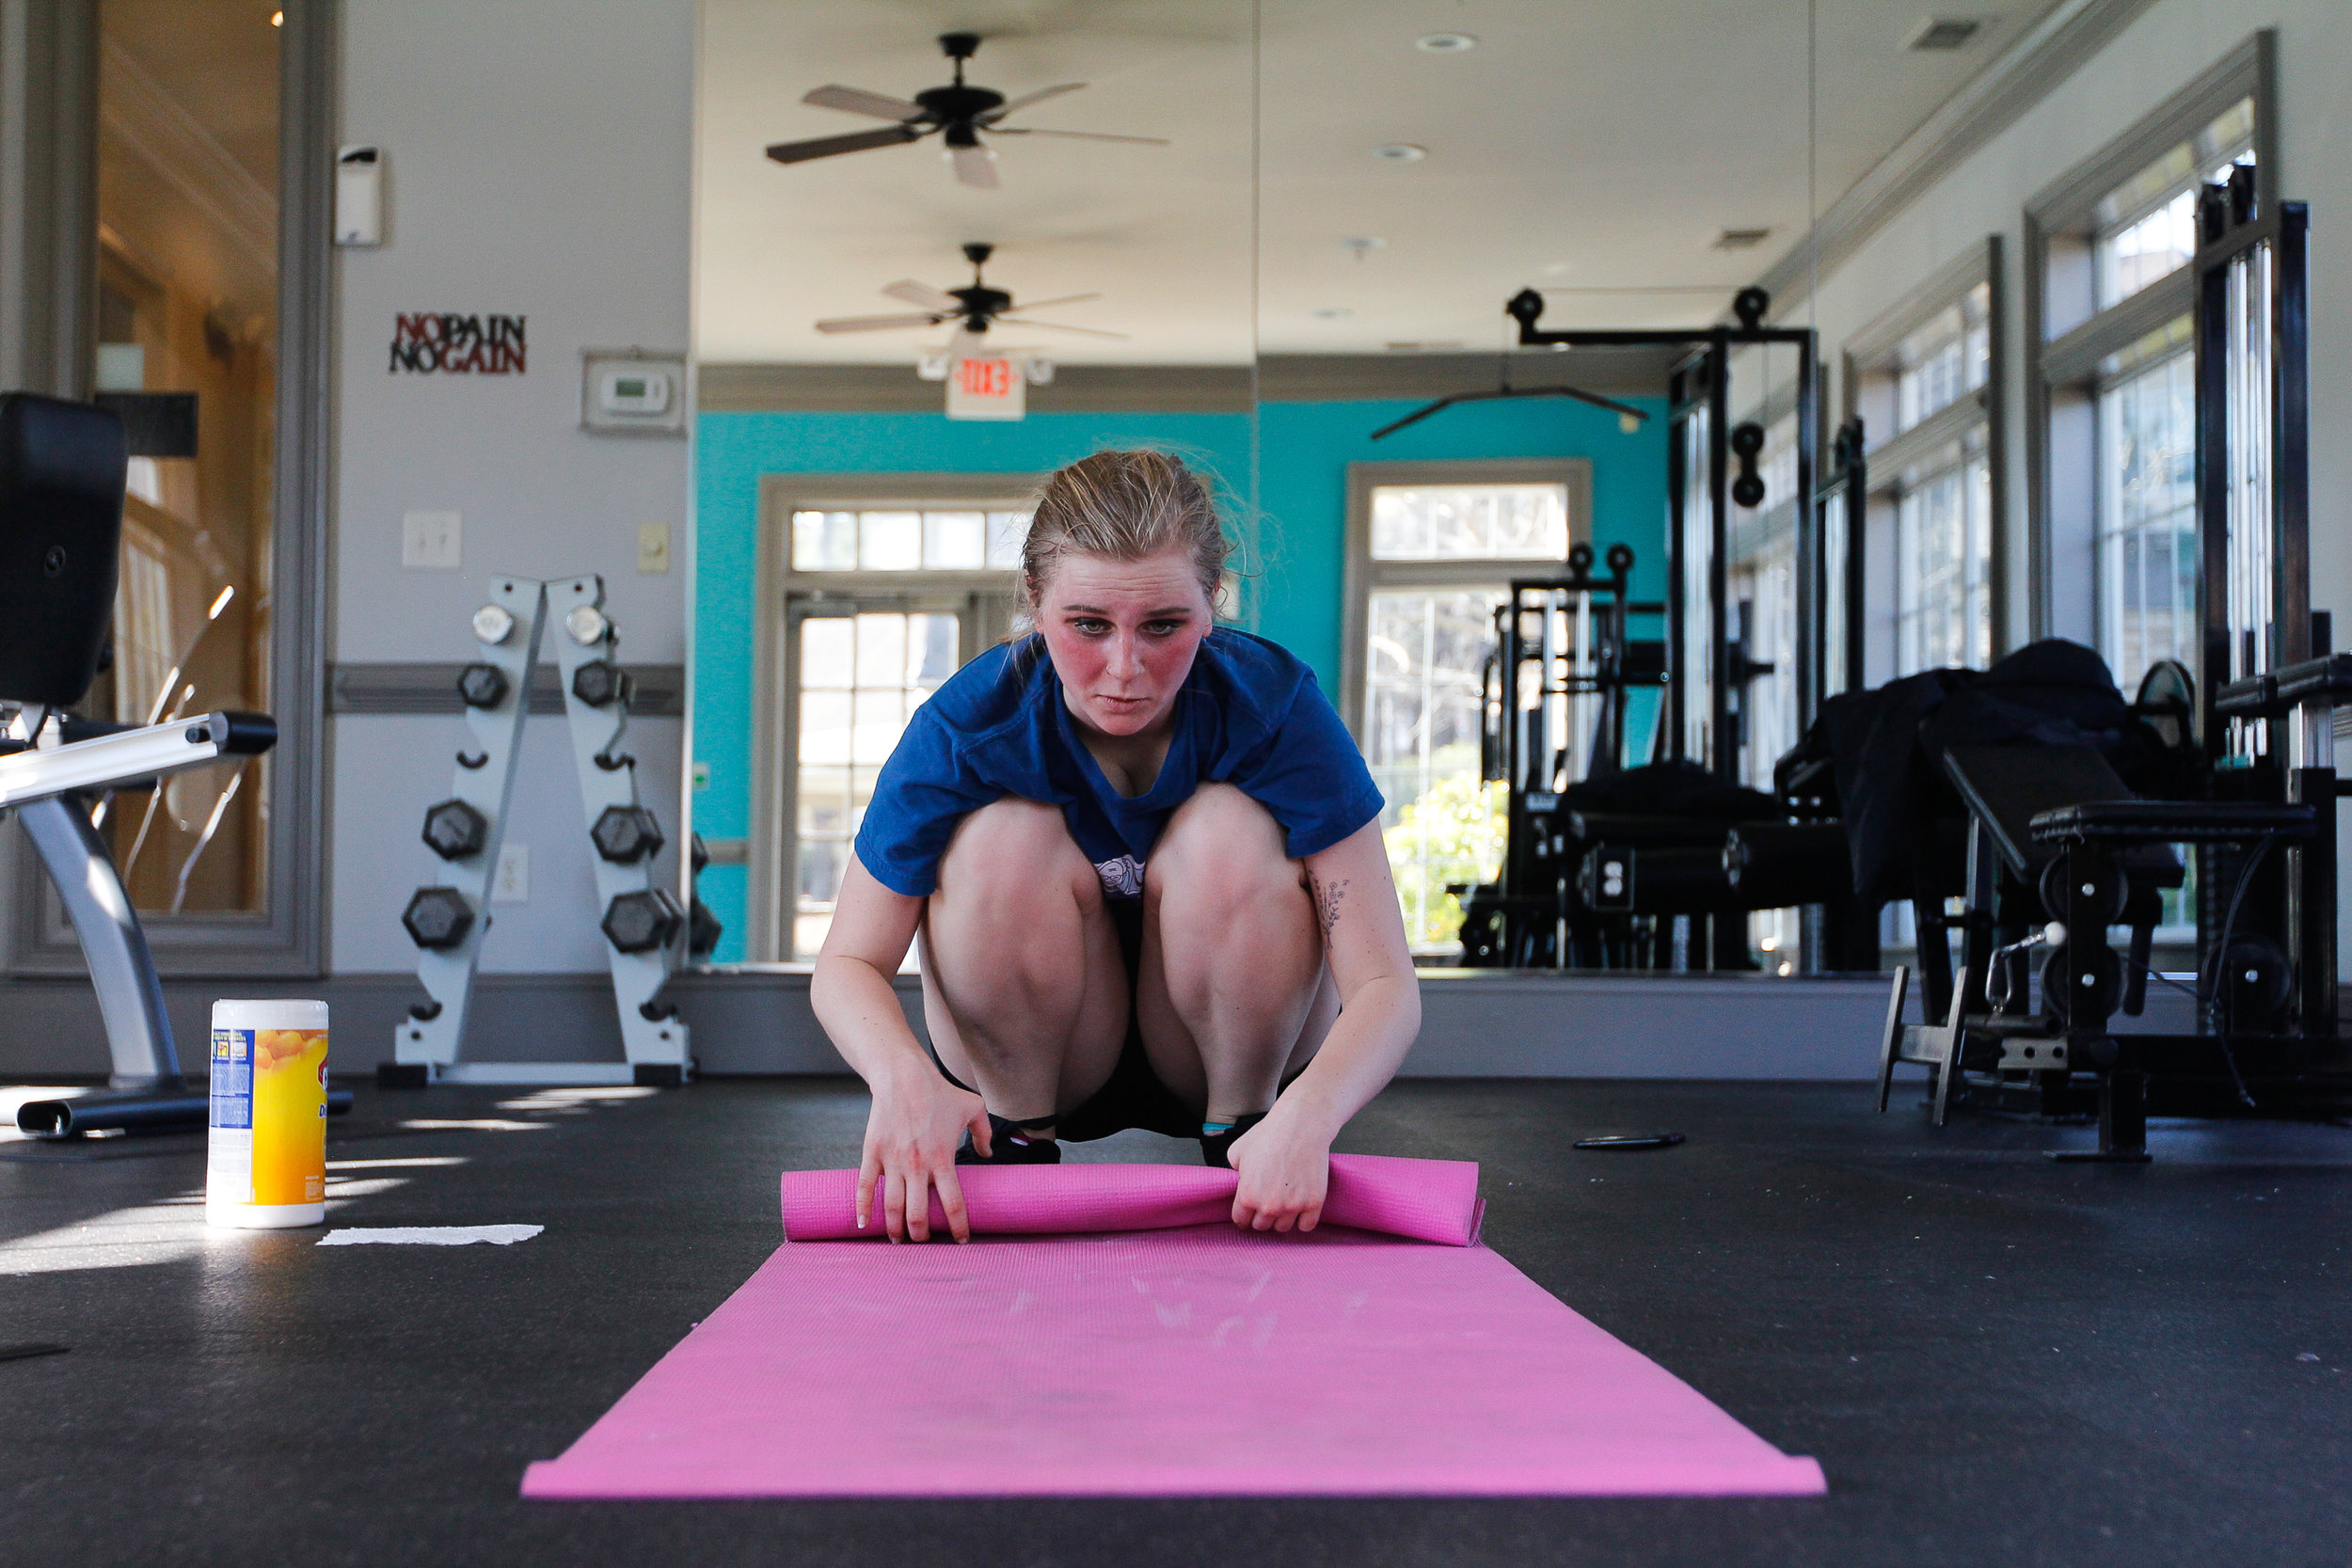 "Ashlynn Brown, 18, rolls up a yoga mat in the fitness center of her apartment complex in Woodstock, Ga., on Sunday, March 19, 2017. ""I love the idea of suffering. There's also a part of me that loves testing the limits of my body,"" says Ashlynn. Since entering recovery from her eating disorder, she searches for satisfaction through exercise. Her rigorous, two hour routine is her outlet."